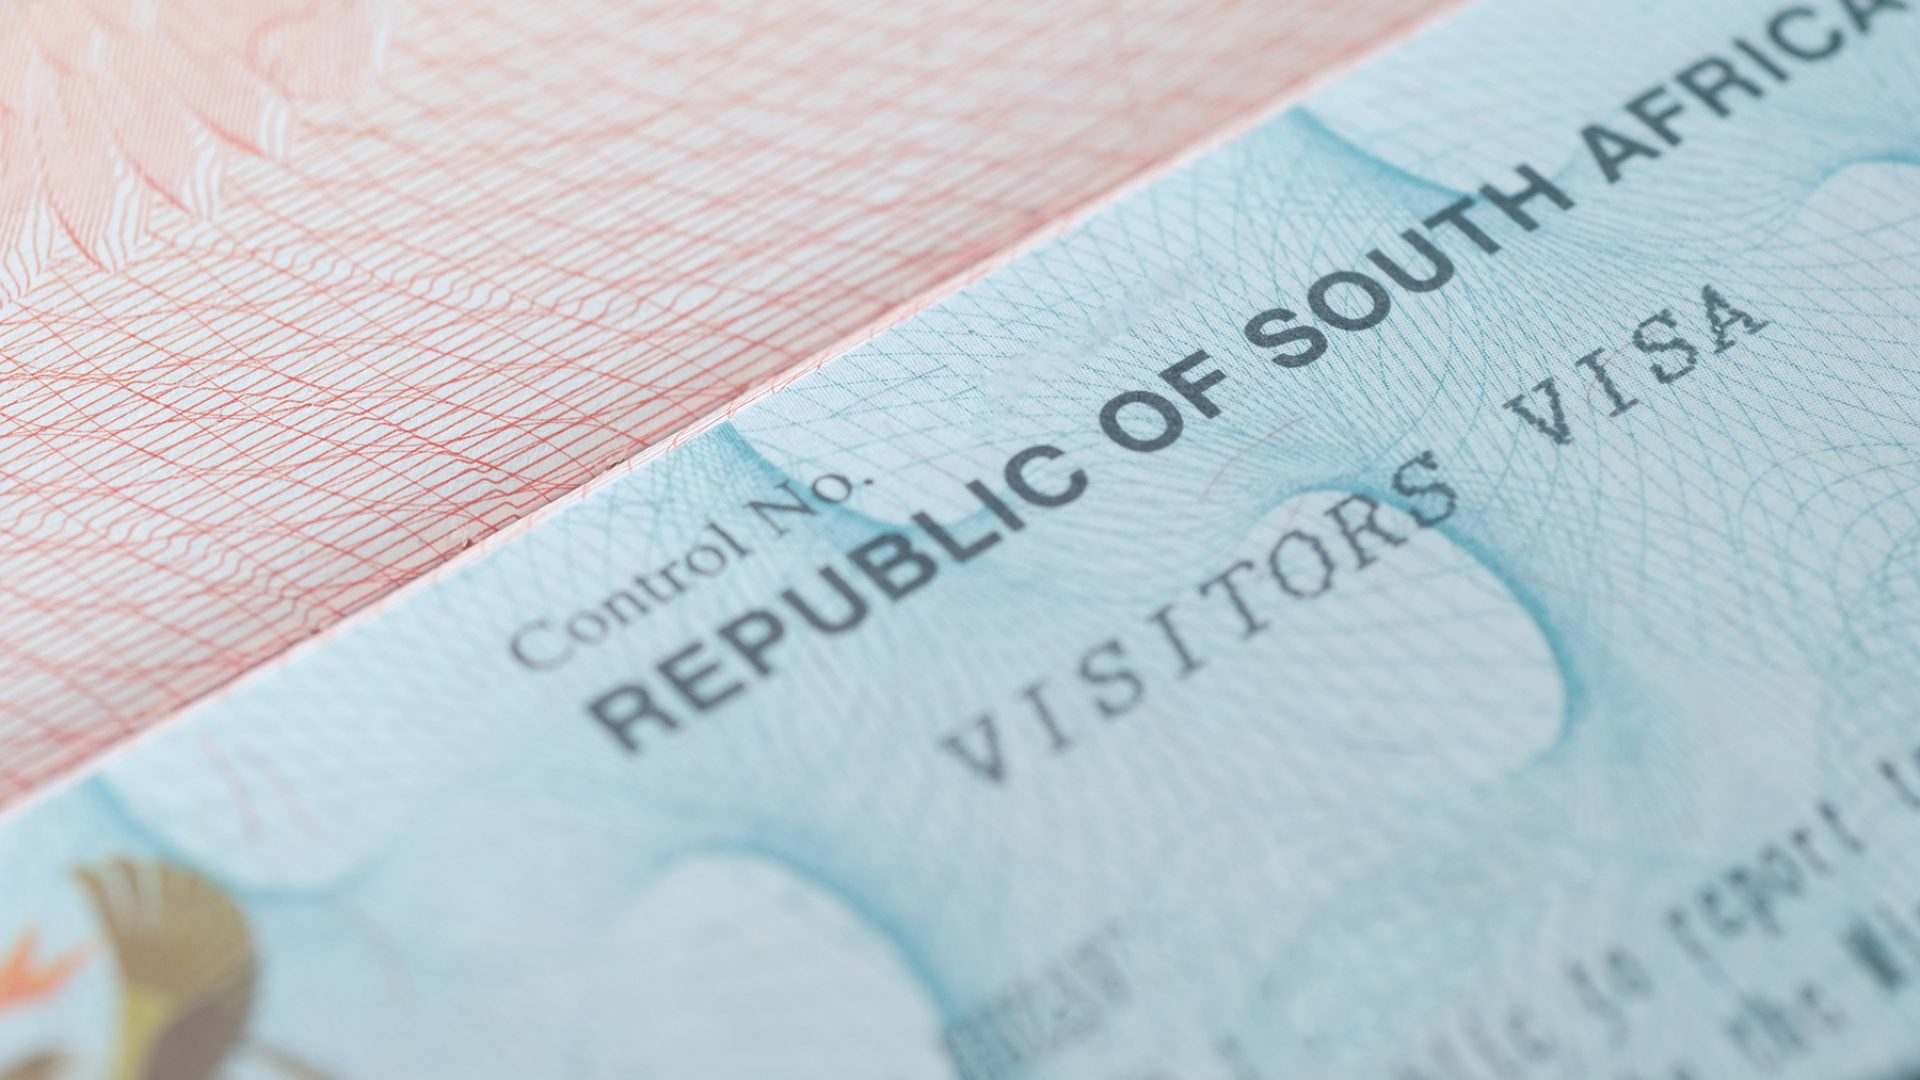 Visas and immigration in South Africa